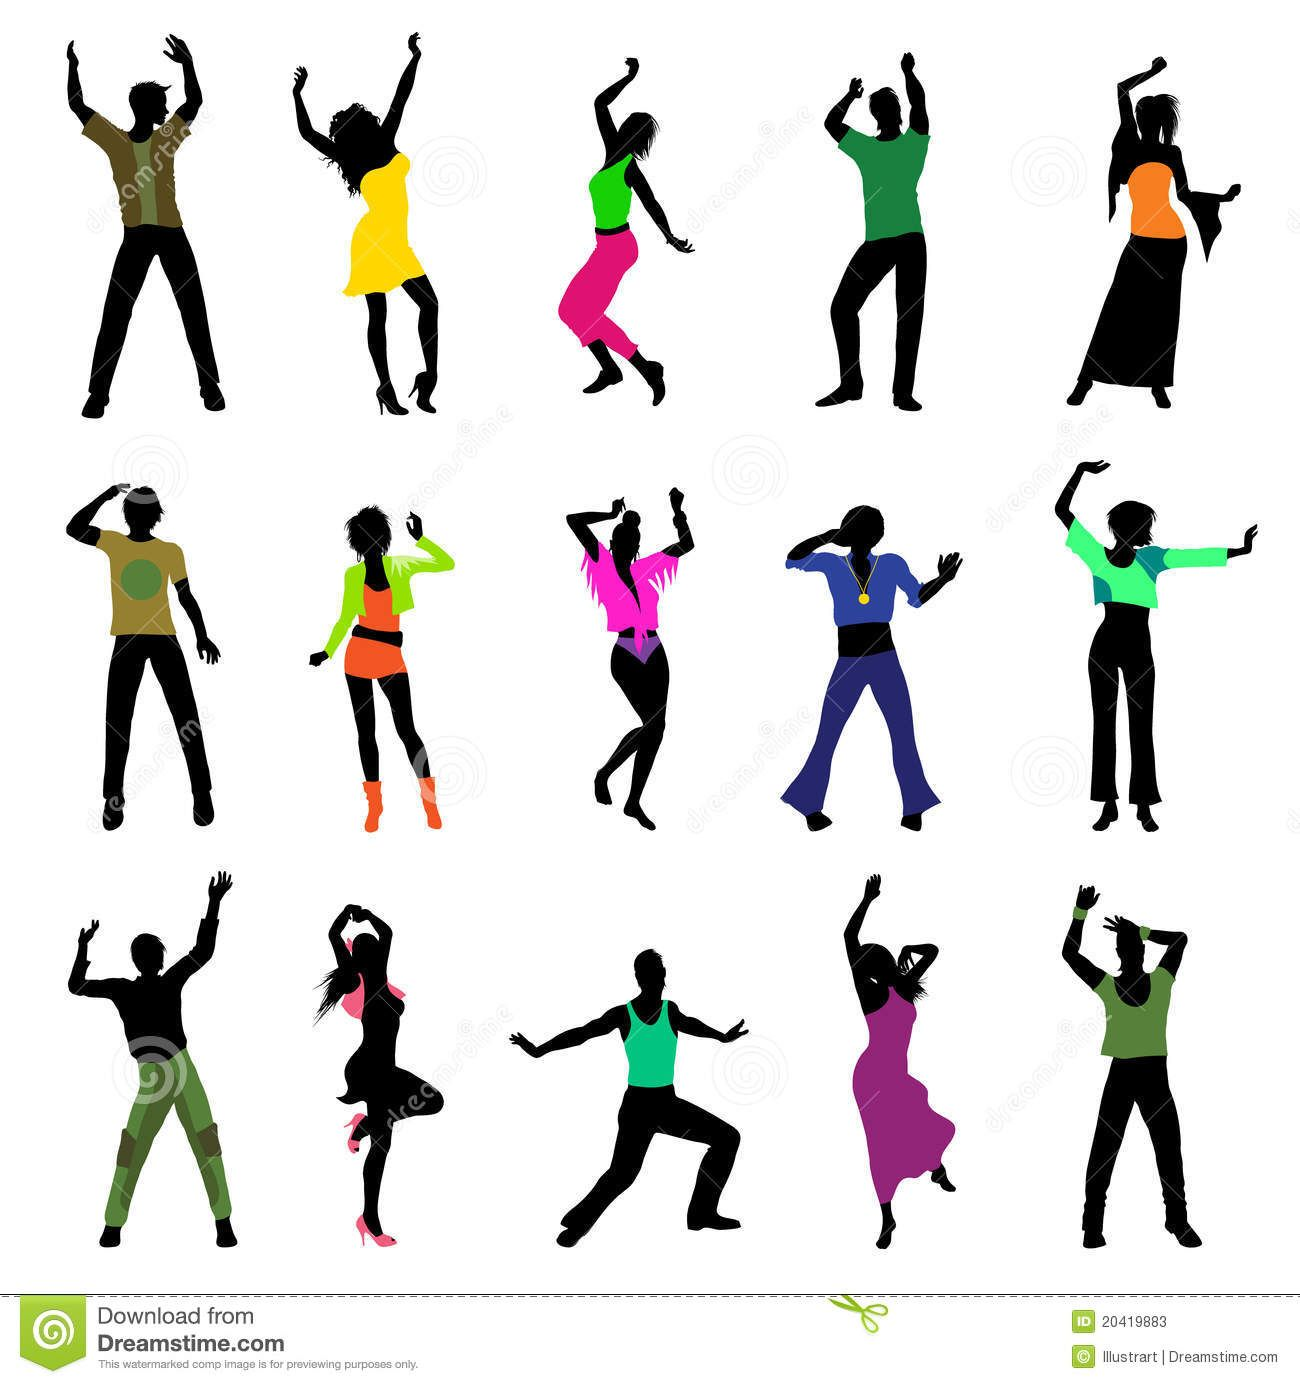 Pin by Barbie on Body Language | Silhouette people ...